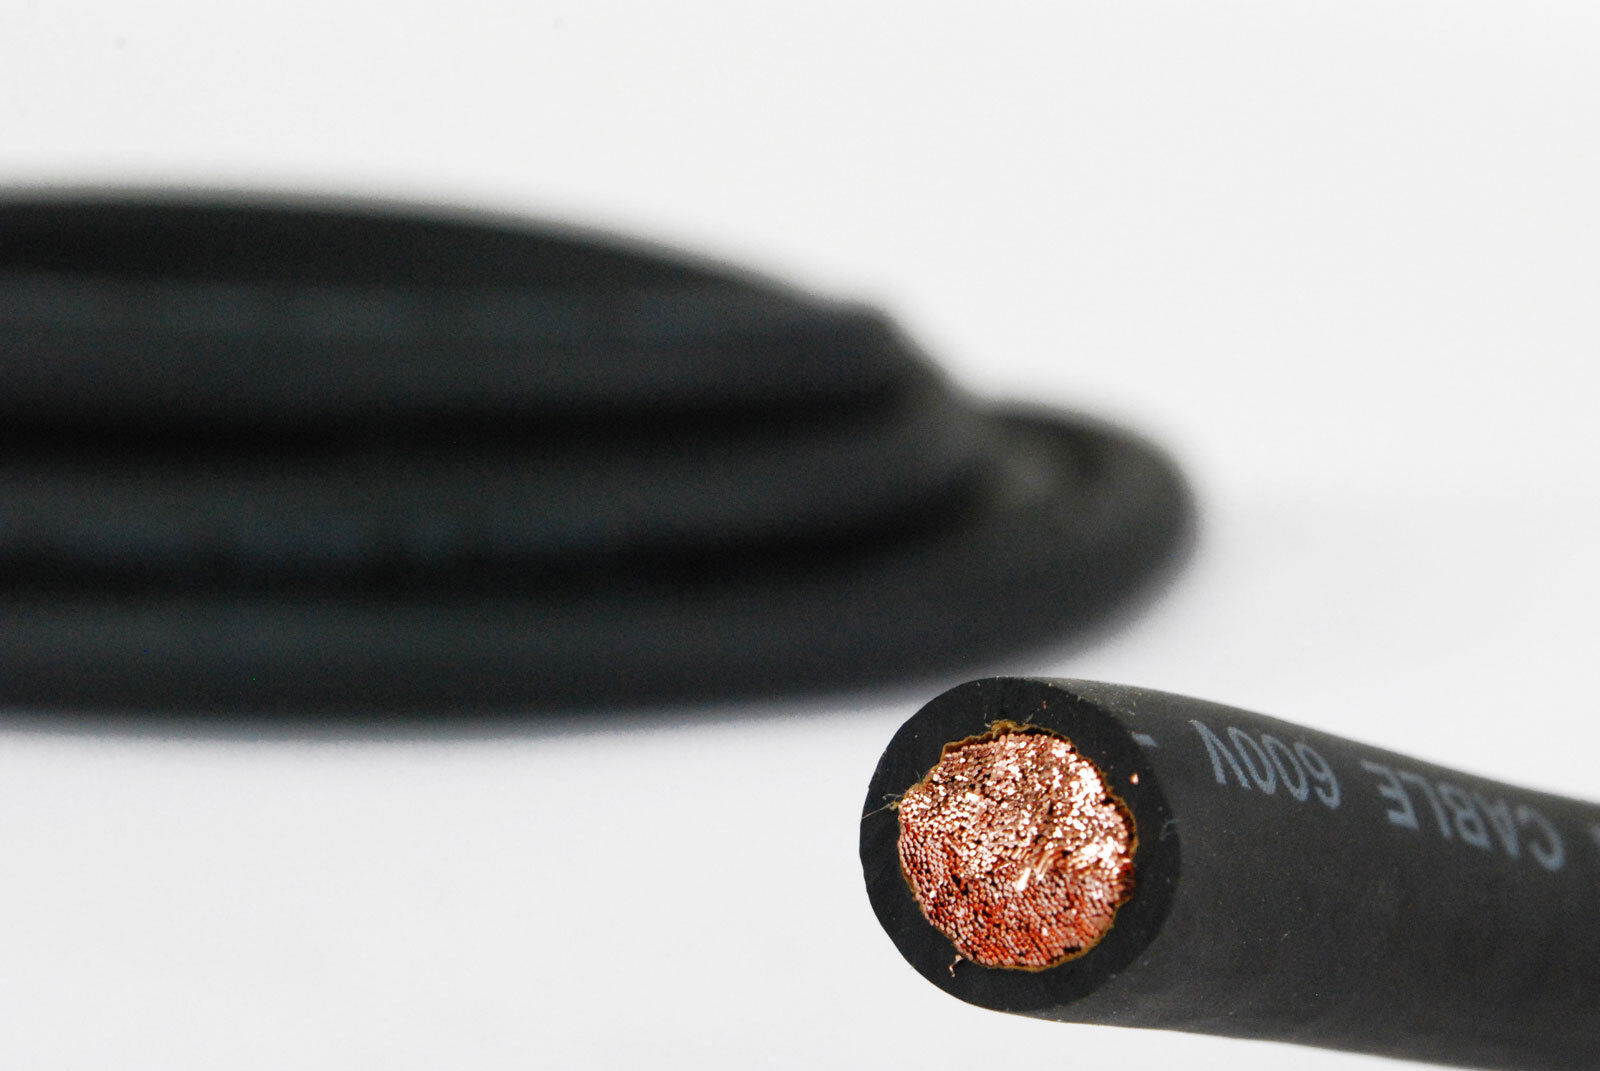 TEMCo WC0099-15 ft 2 Gauge AWG Welding Lead /& Car Battery Cable Copper Wire BLACK MADE IN USA